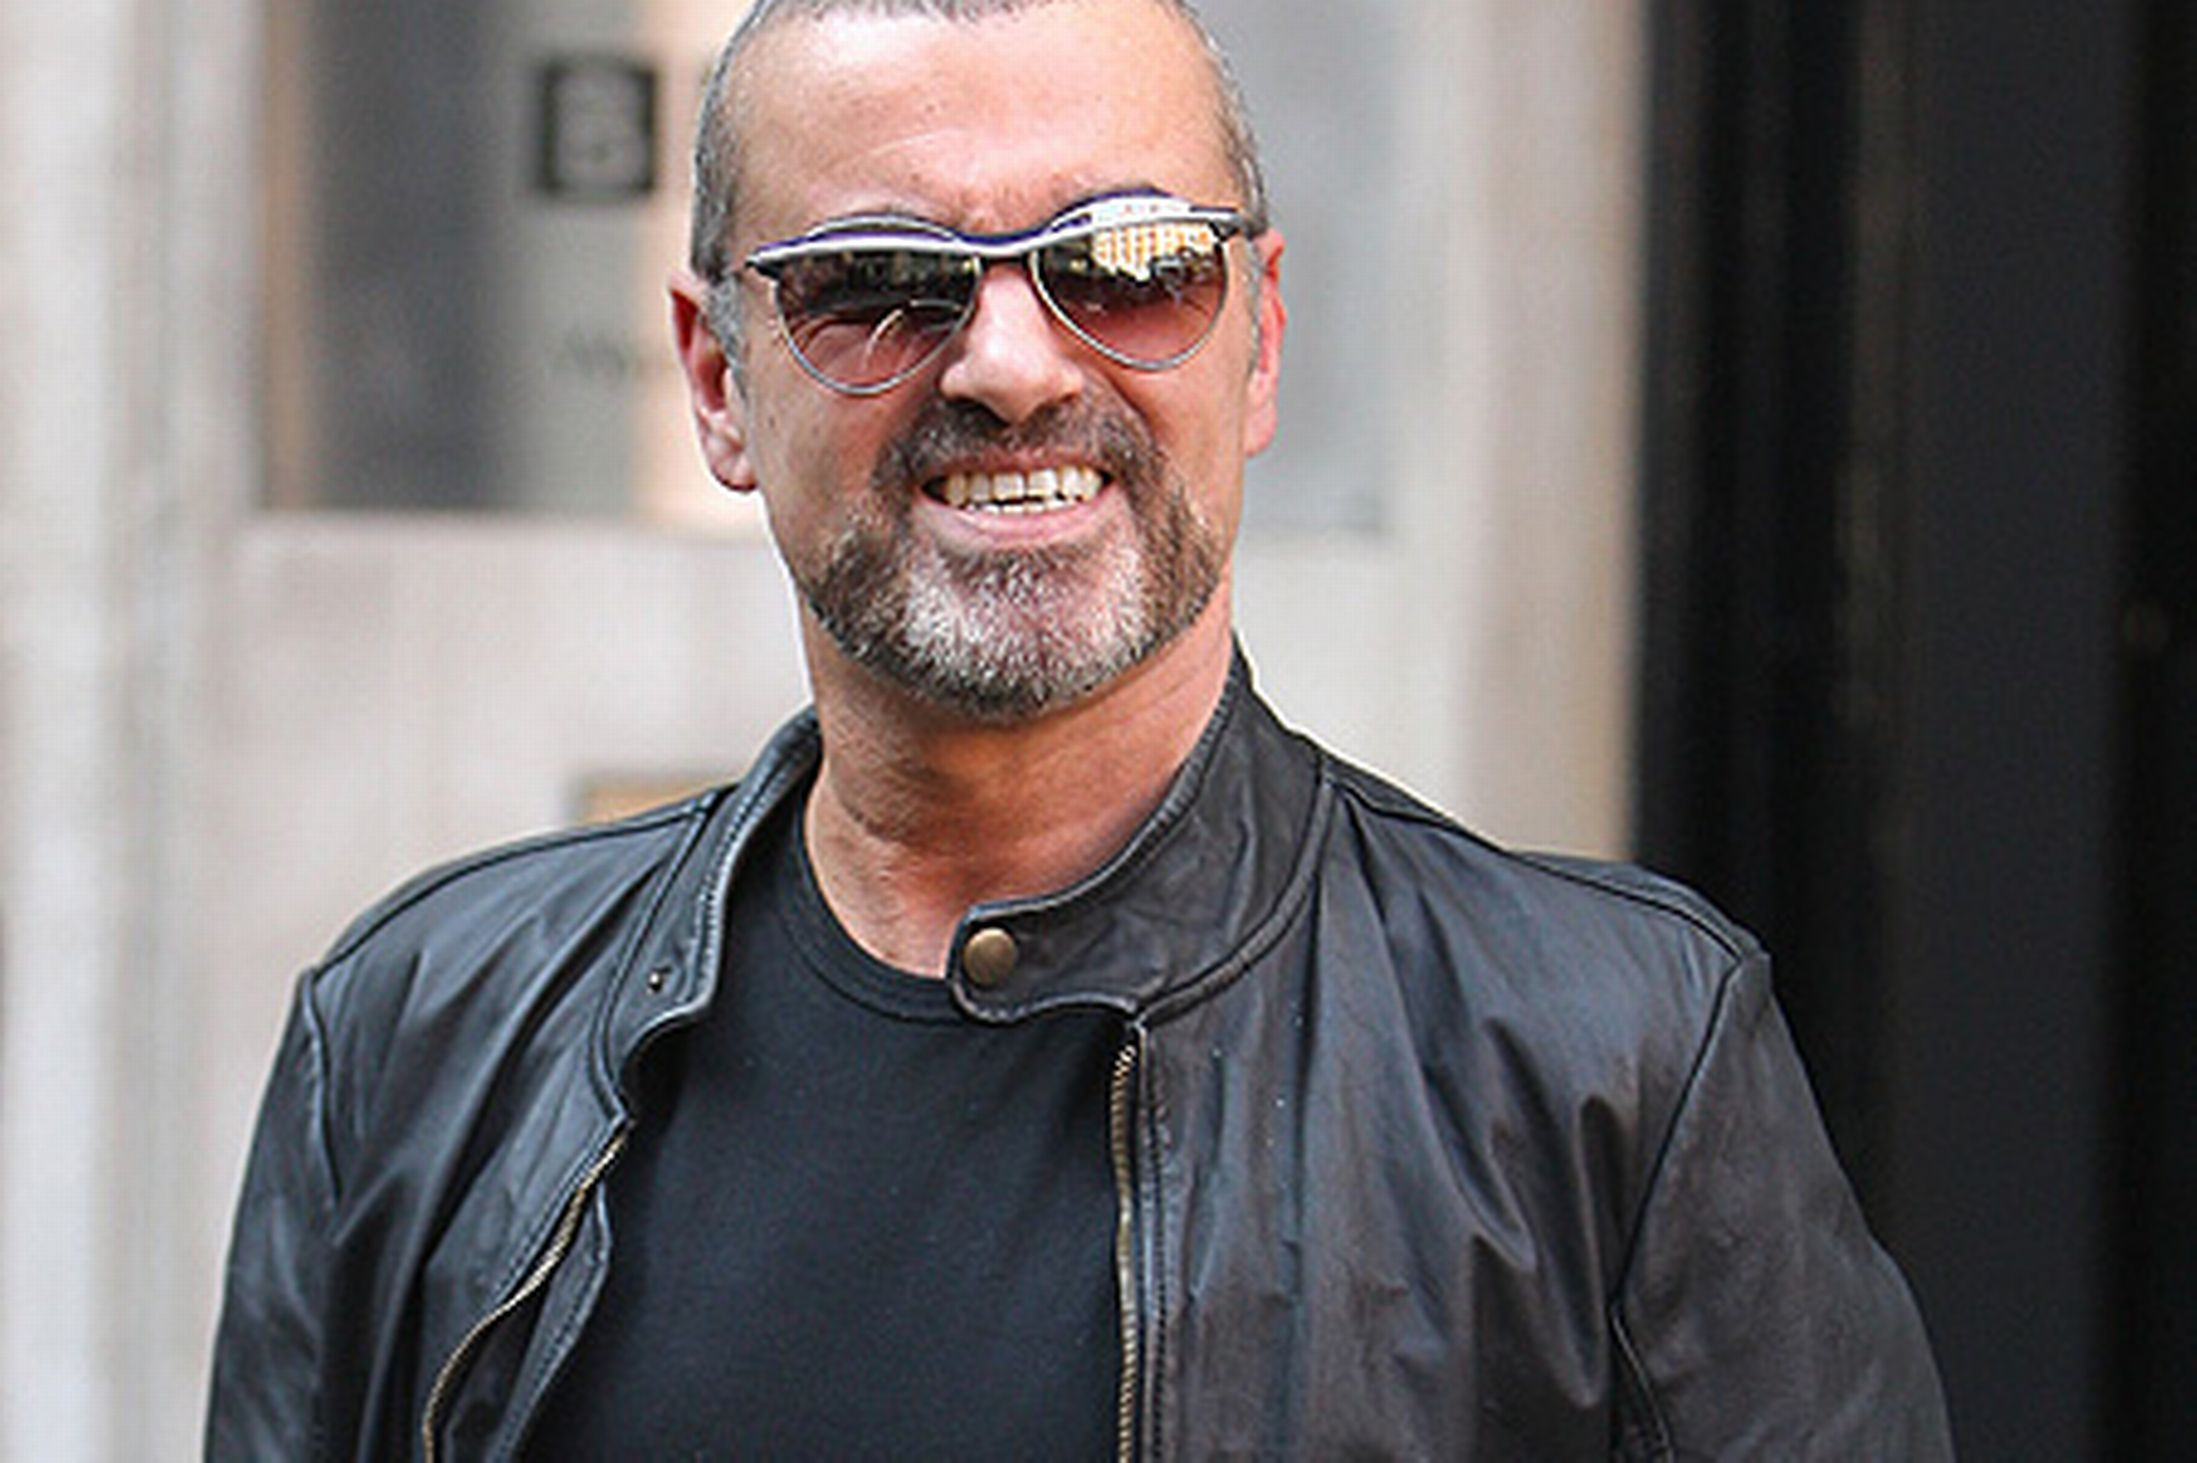 george-michael-pic-rex-features-843304212.jpg